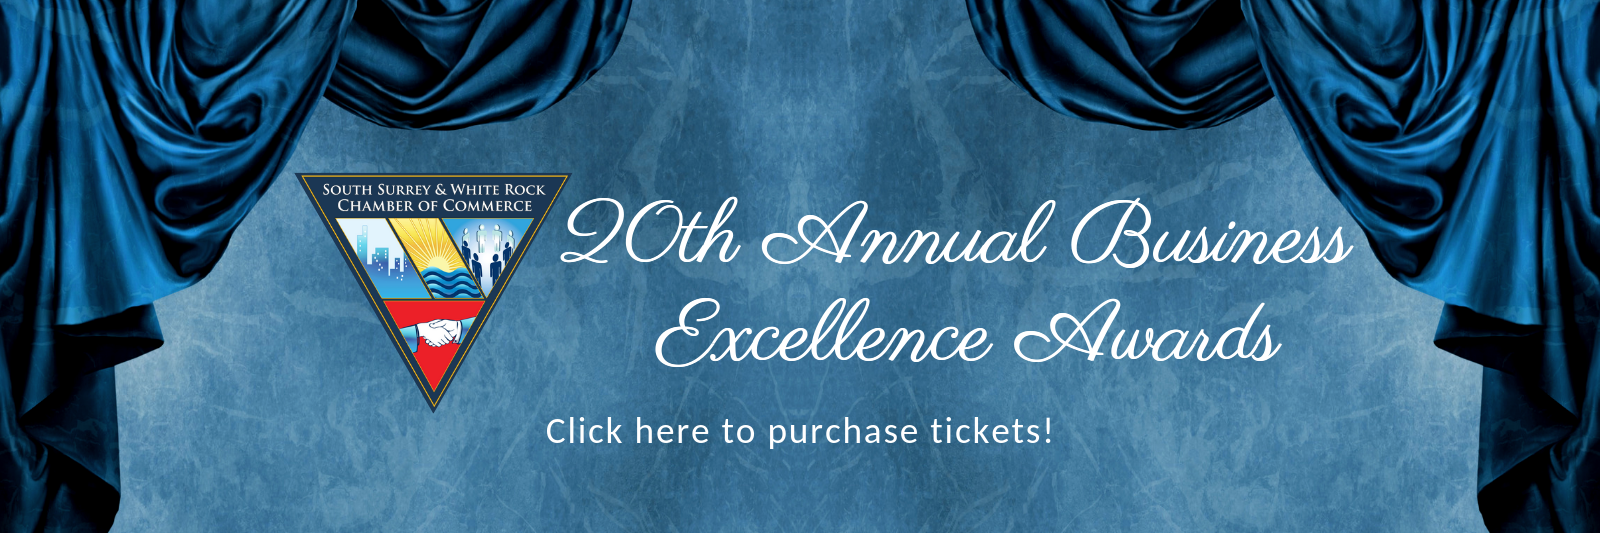 20th-Annual-Business-Excellence-Awards-1600px-x-533px-tickets.png